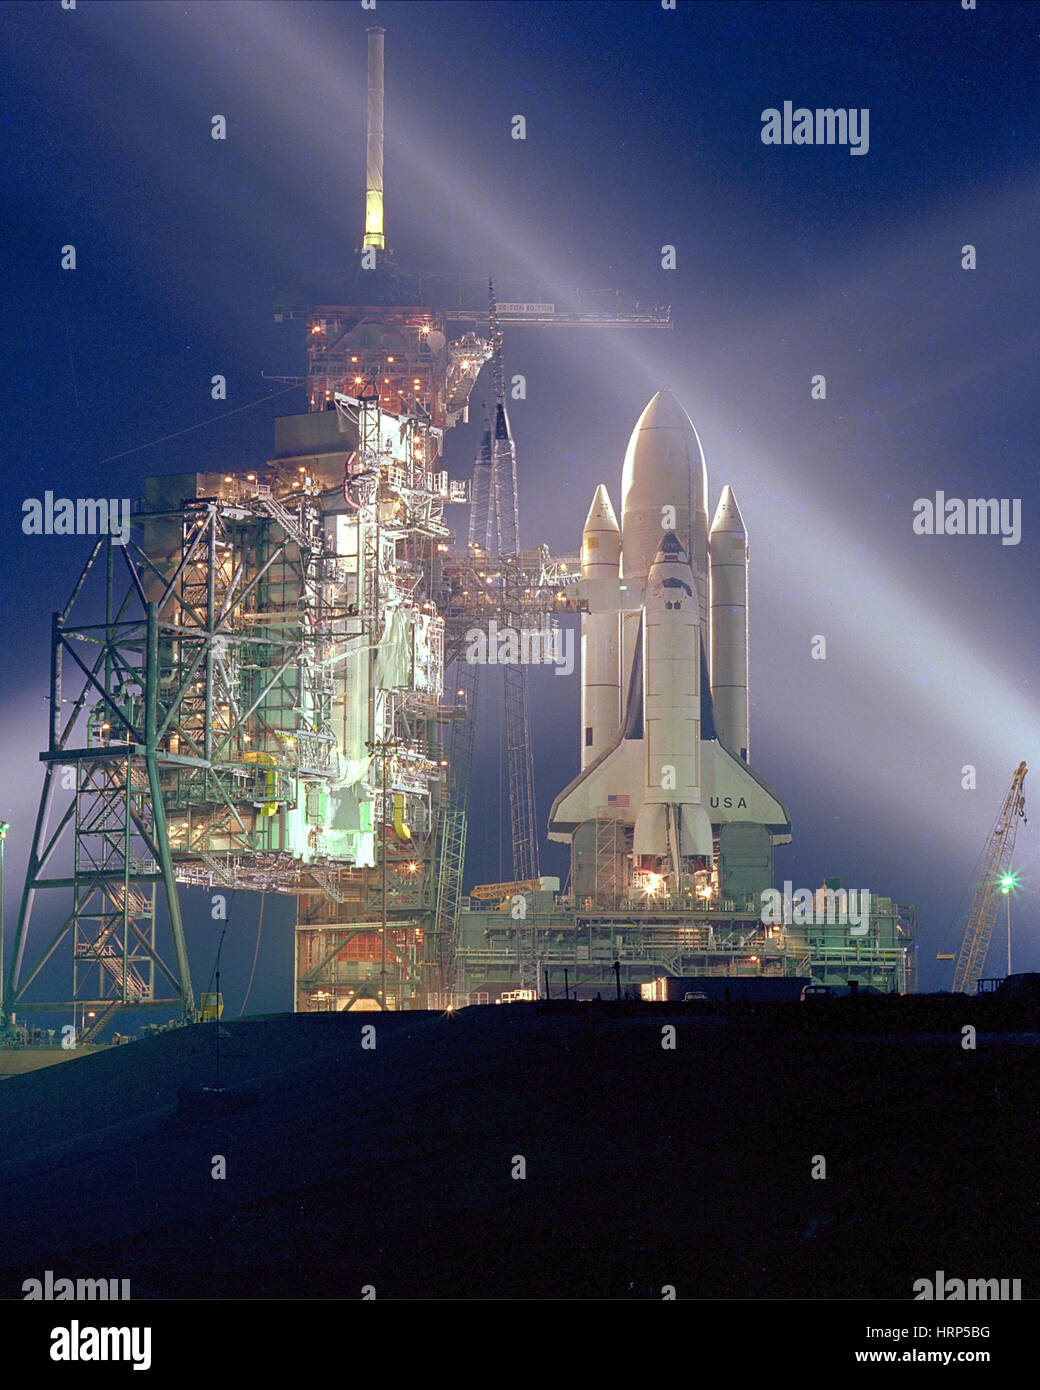 STS-1, Space Shuttle Columbia at Launch Pad, 1981 - Stock Image